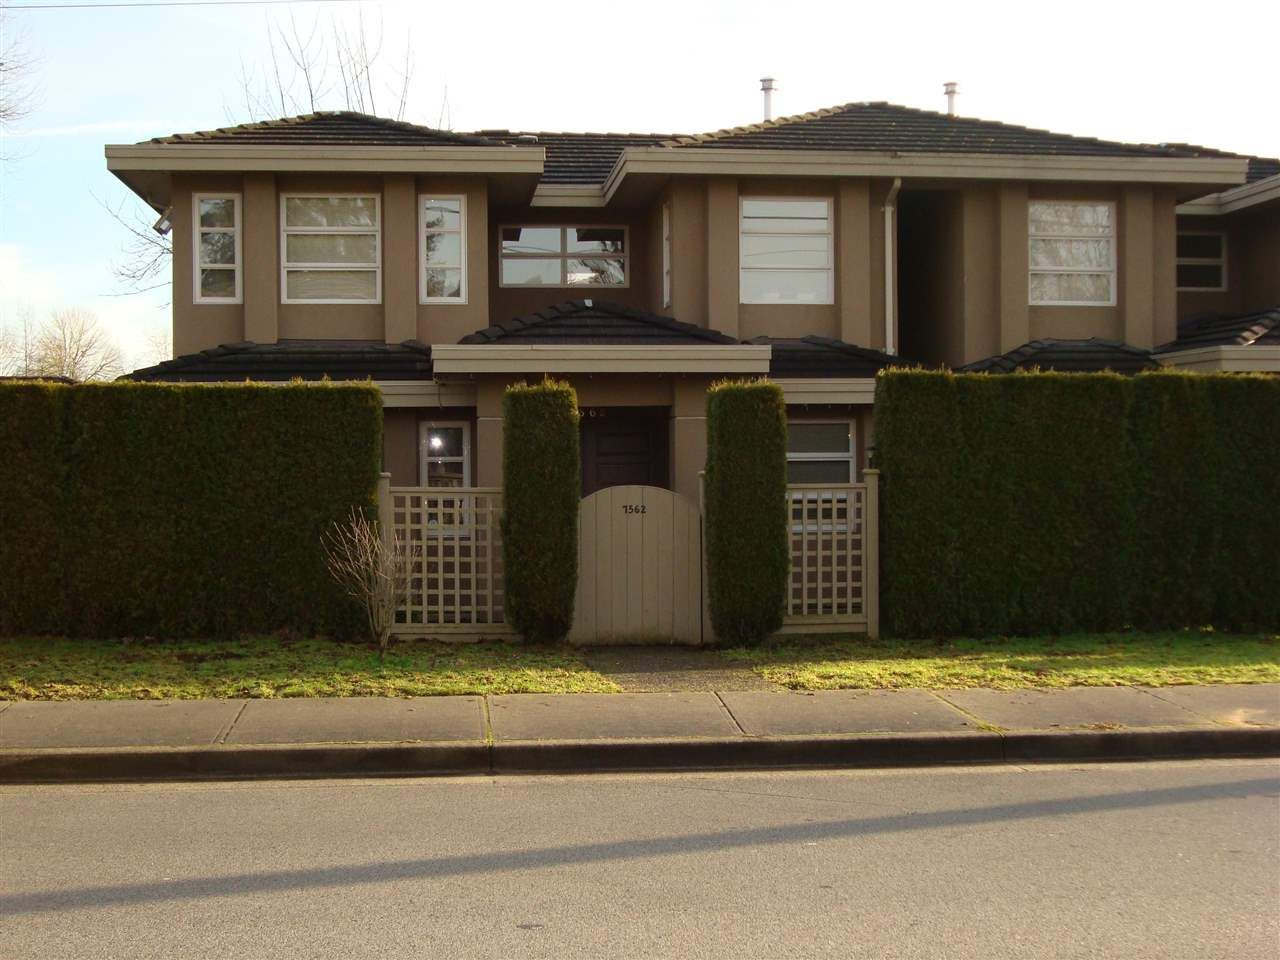 Main Photo: 7562 16TH Avenue in Burnaby: Edmonds BE 1/2 Duplex for sale (Burnaby East)  : MLS®# R2022922